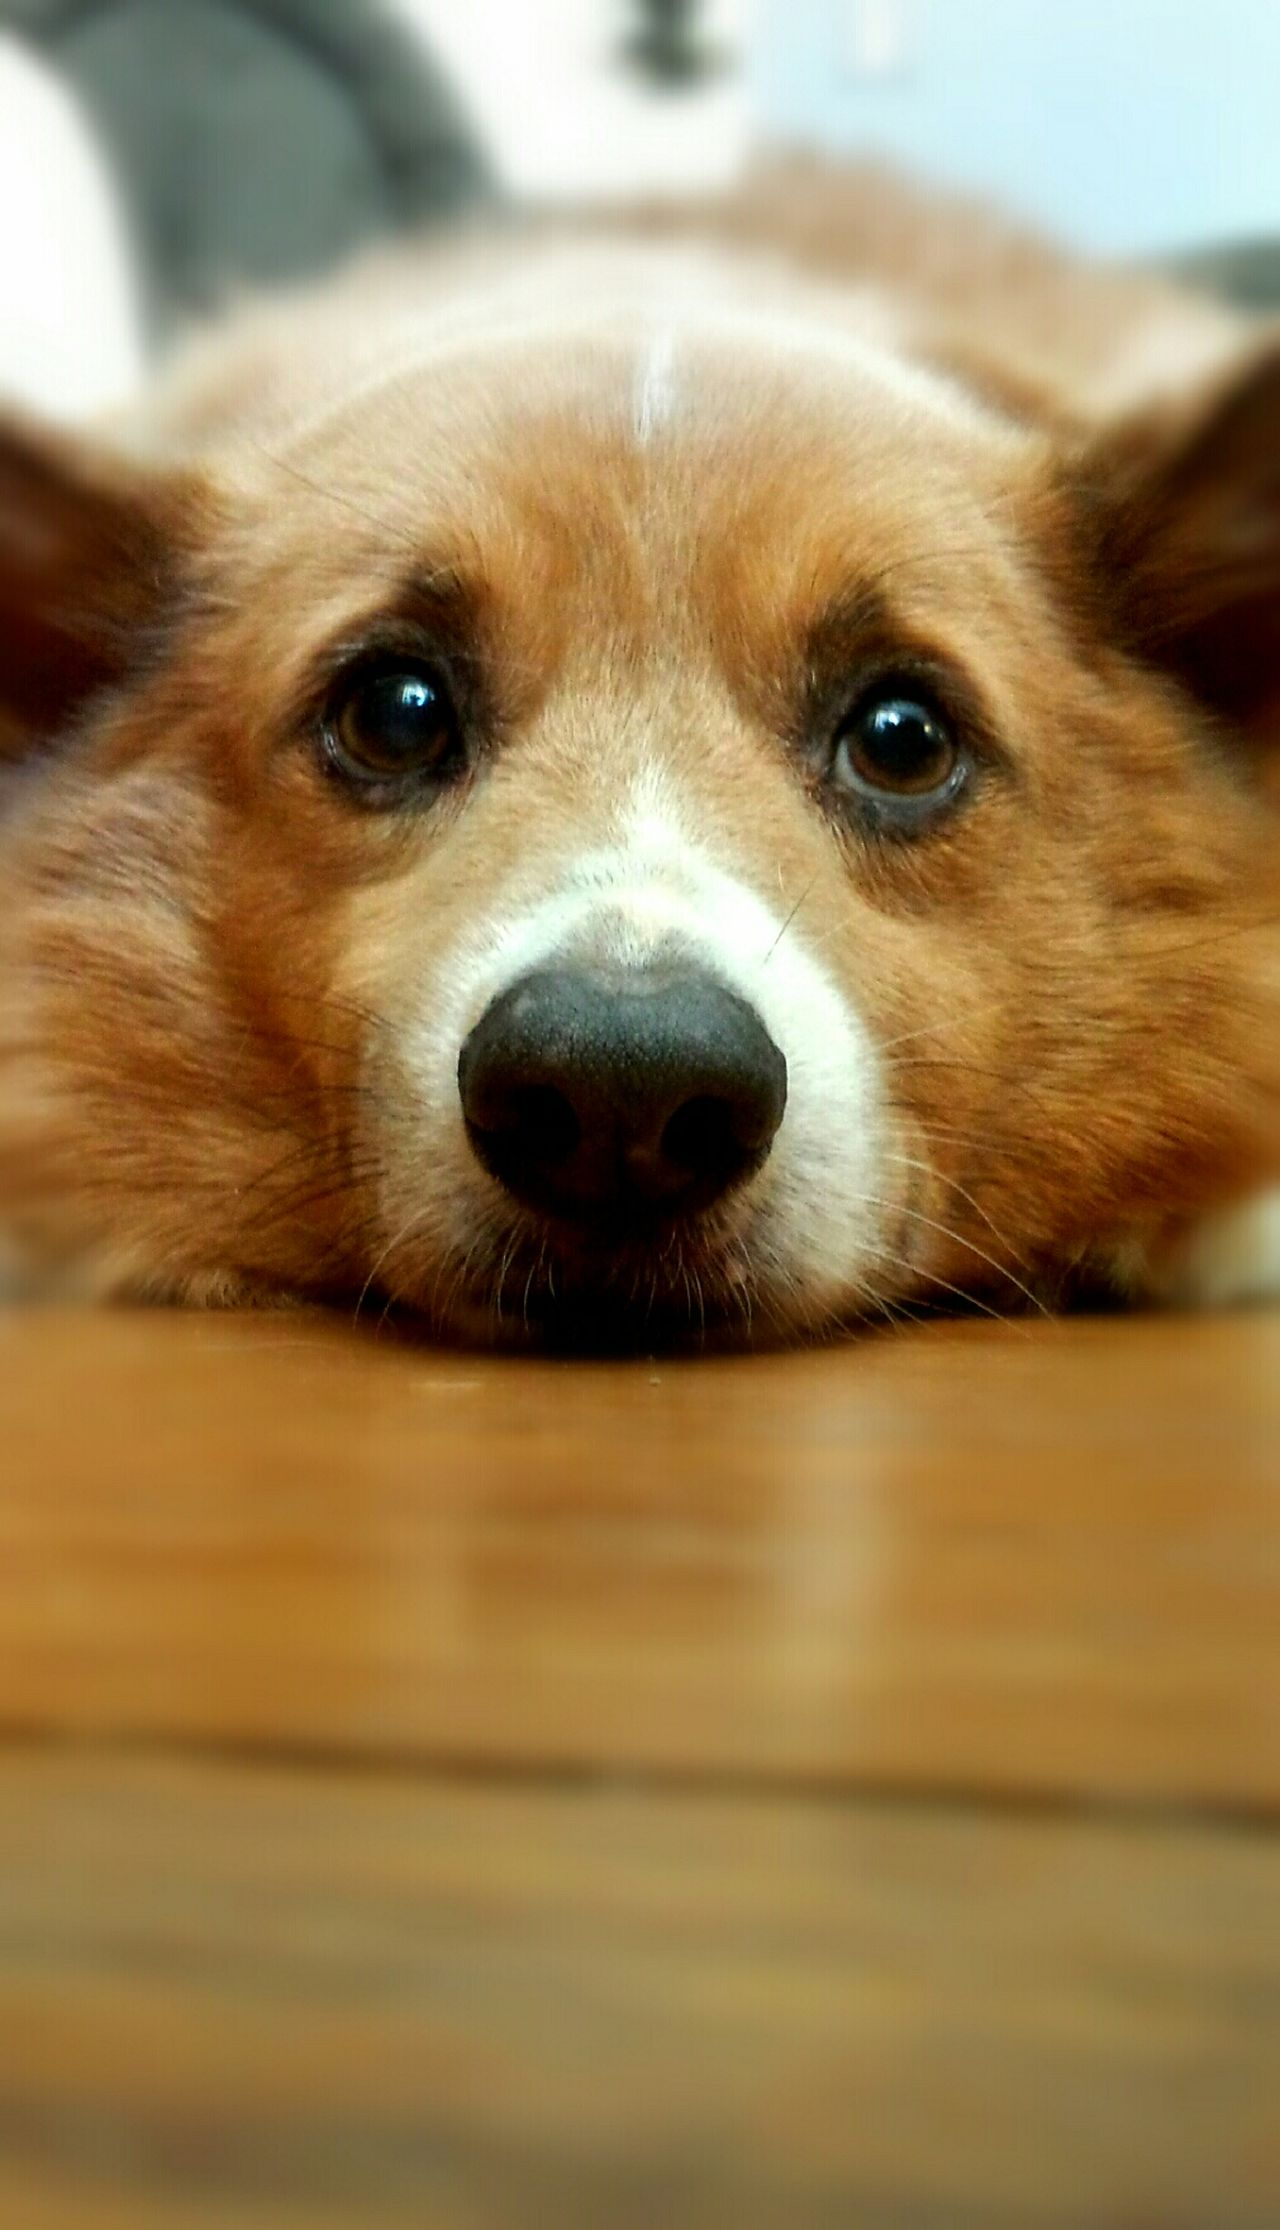 A thoughtful pet Relaxing Dog Corgi Welsh Corgi Laying Down Facial Expressions Family Pet Pet Photography  Furry Friends First Eyeem Photo